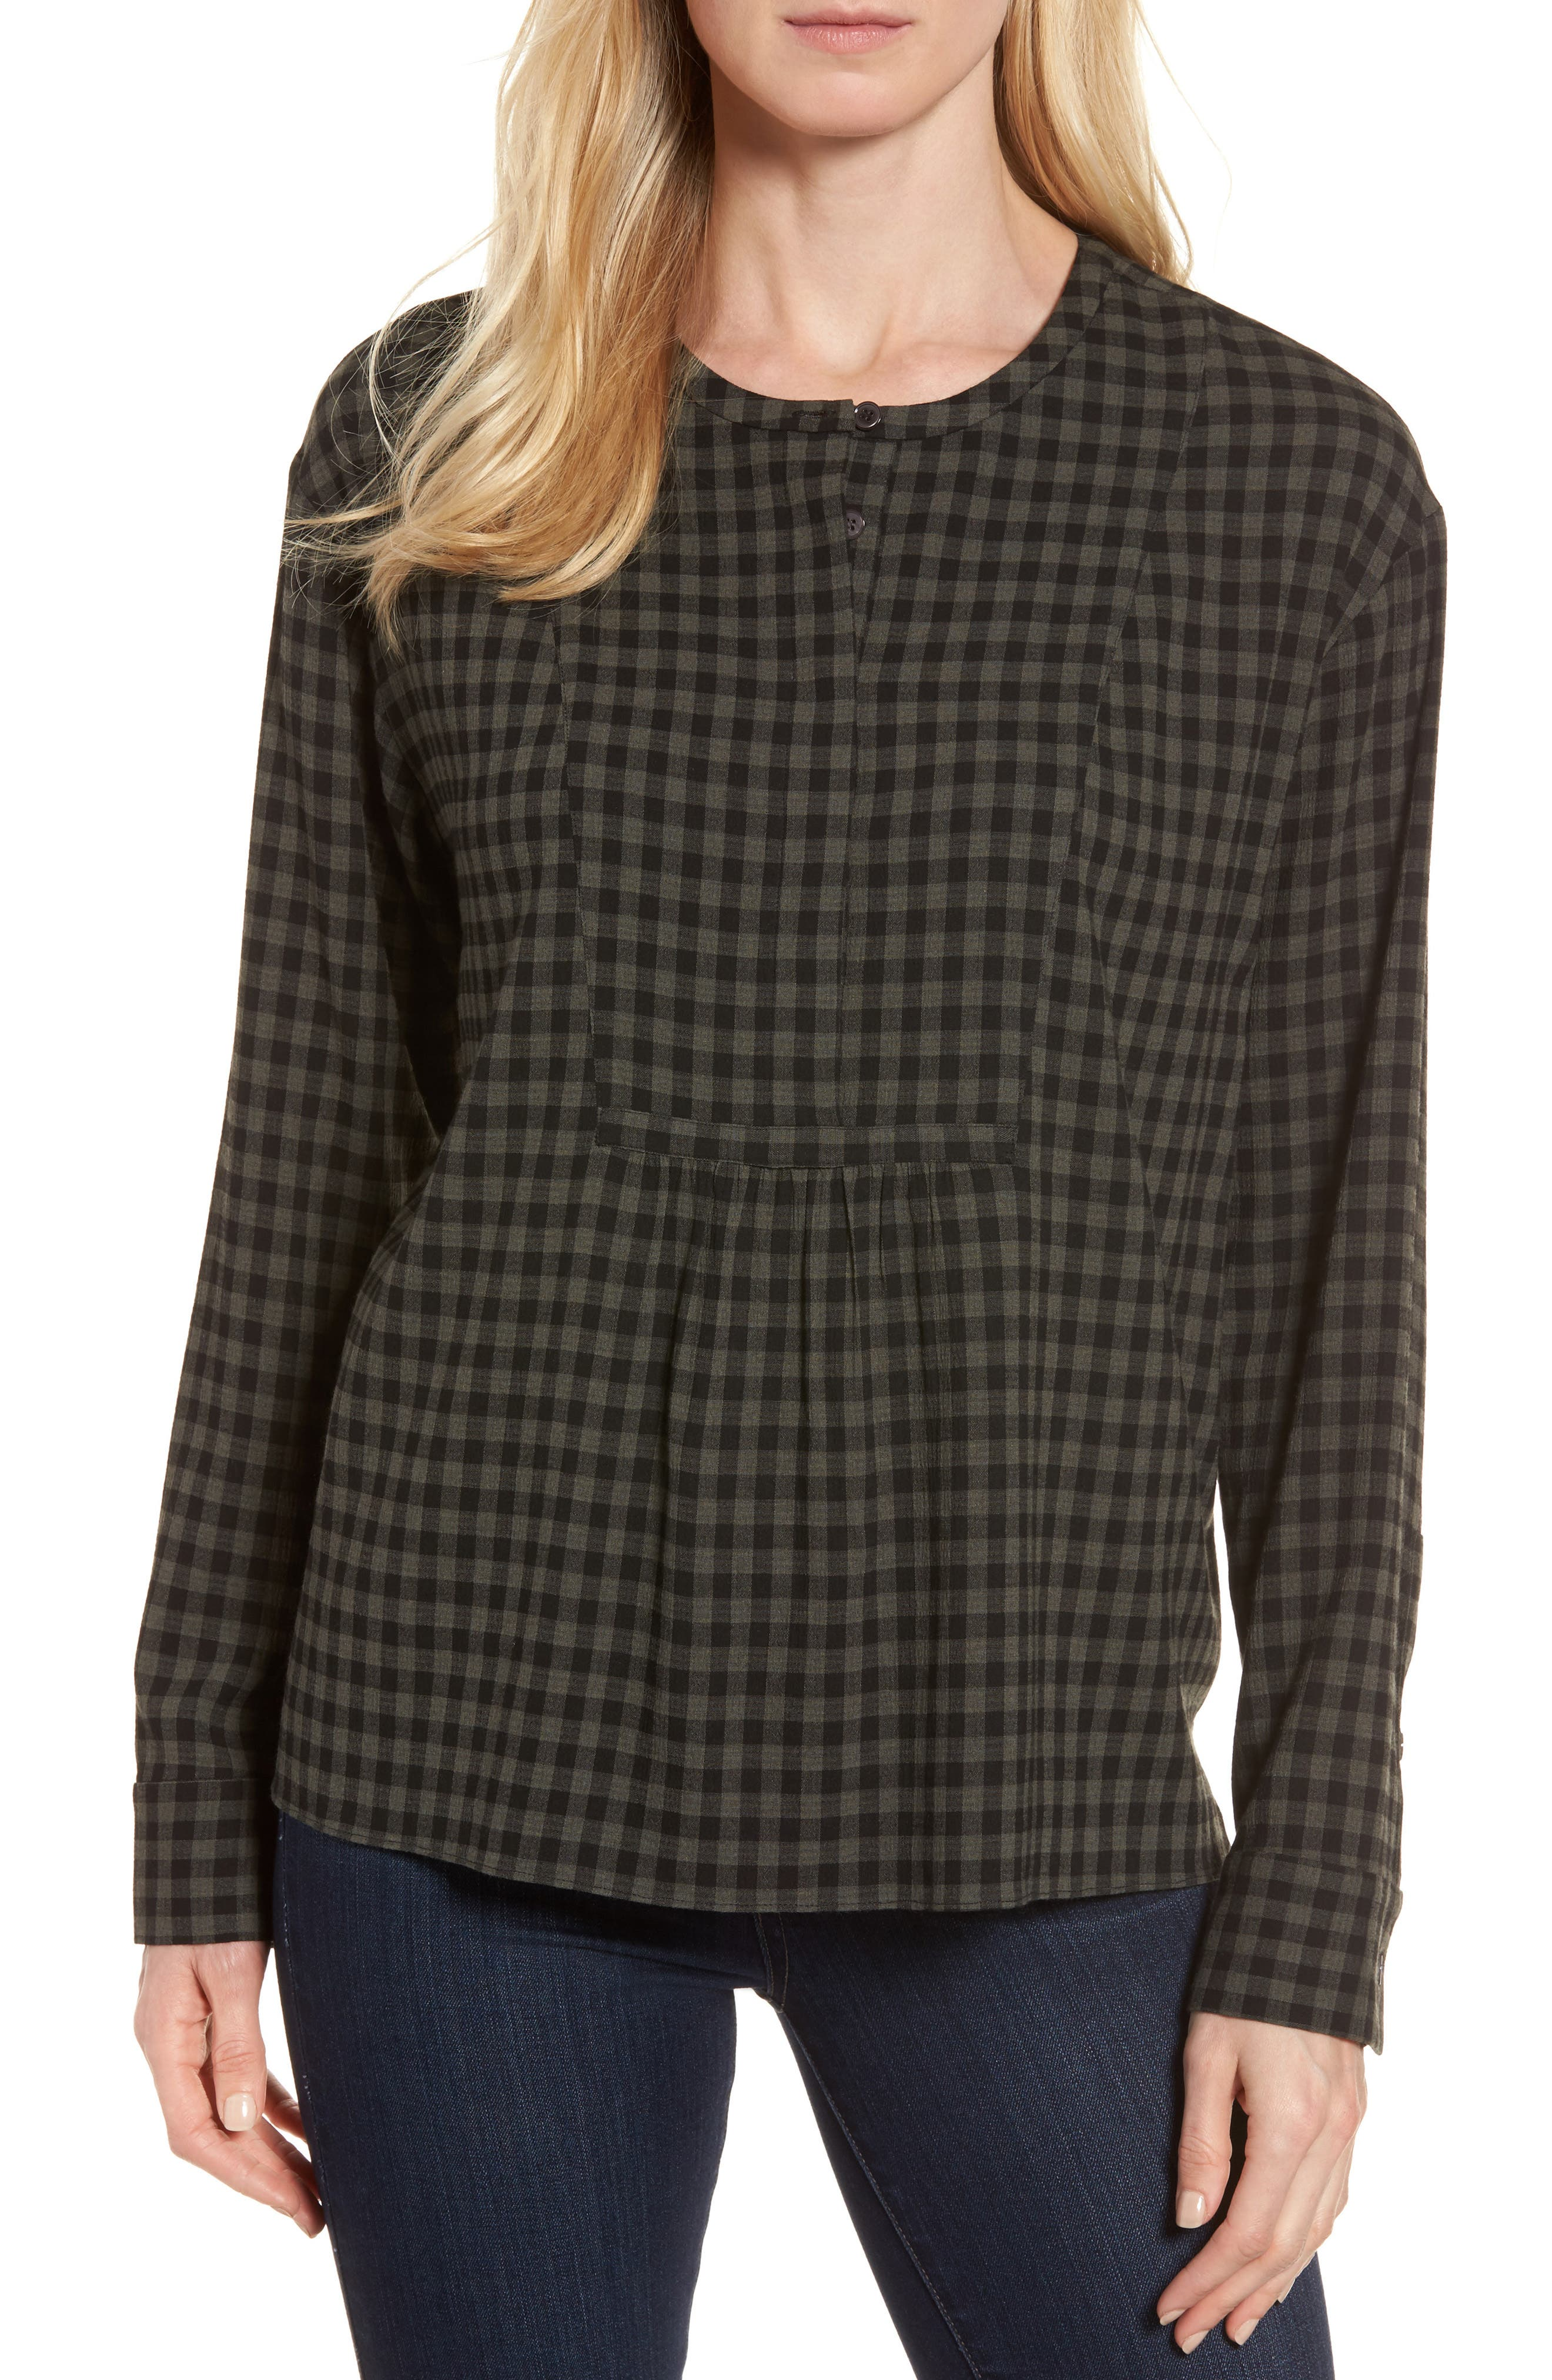 Gingham Check Blouse,                         Main,                         color,